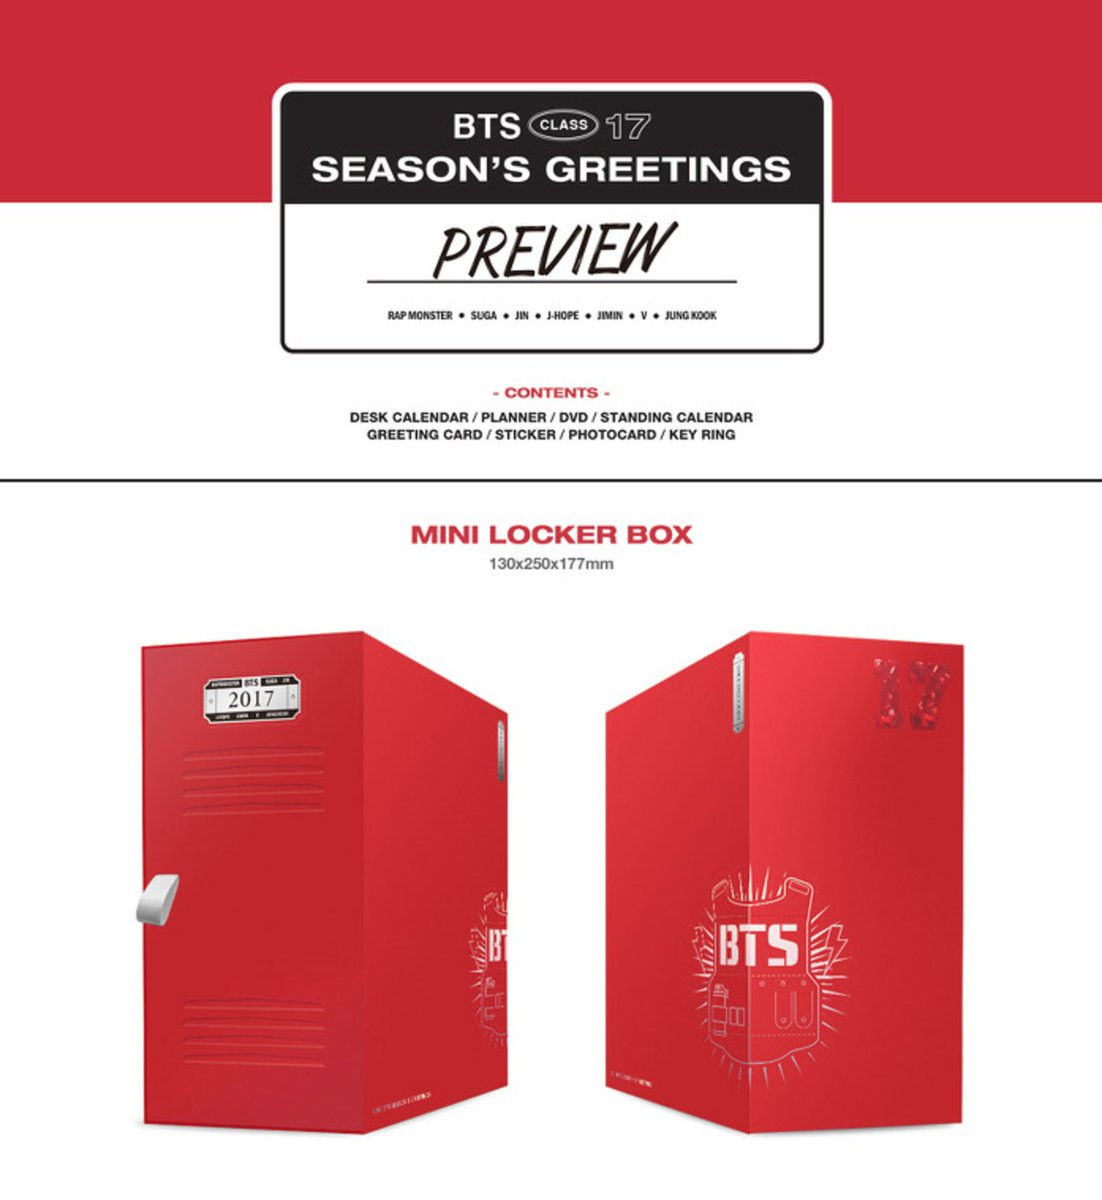 on twitter previews bts on twitter previews bts seasons greetings 2017 order form will be up tomorrow please wait m4hsunfo